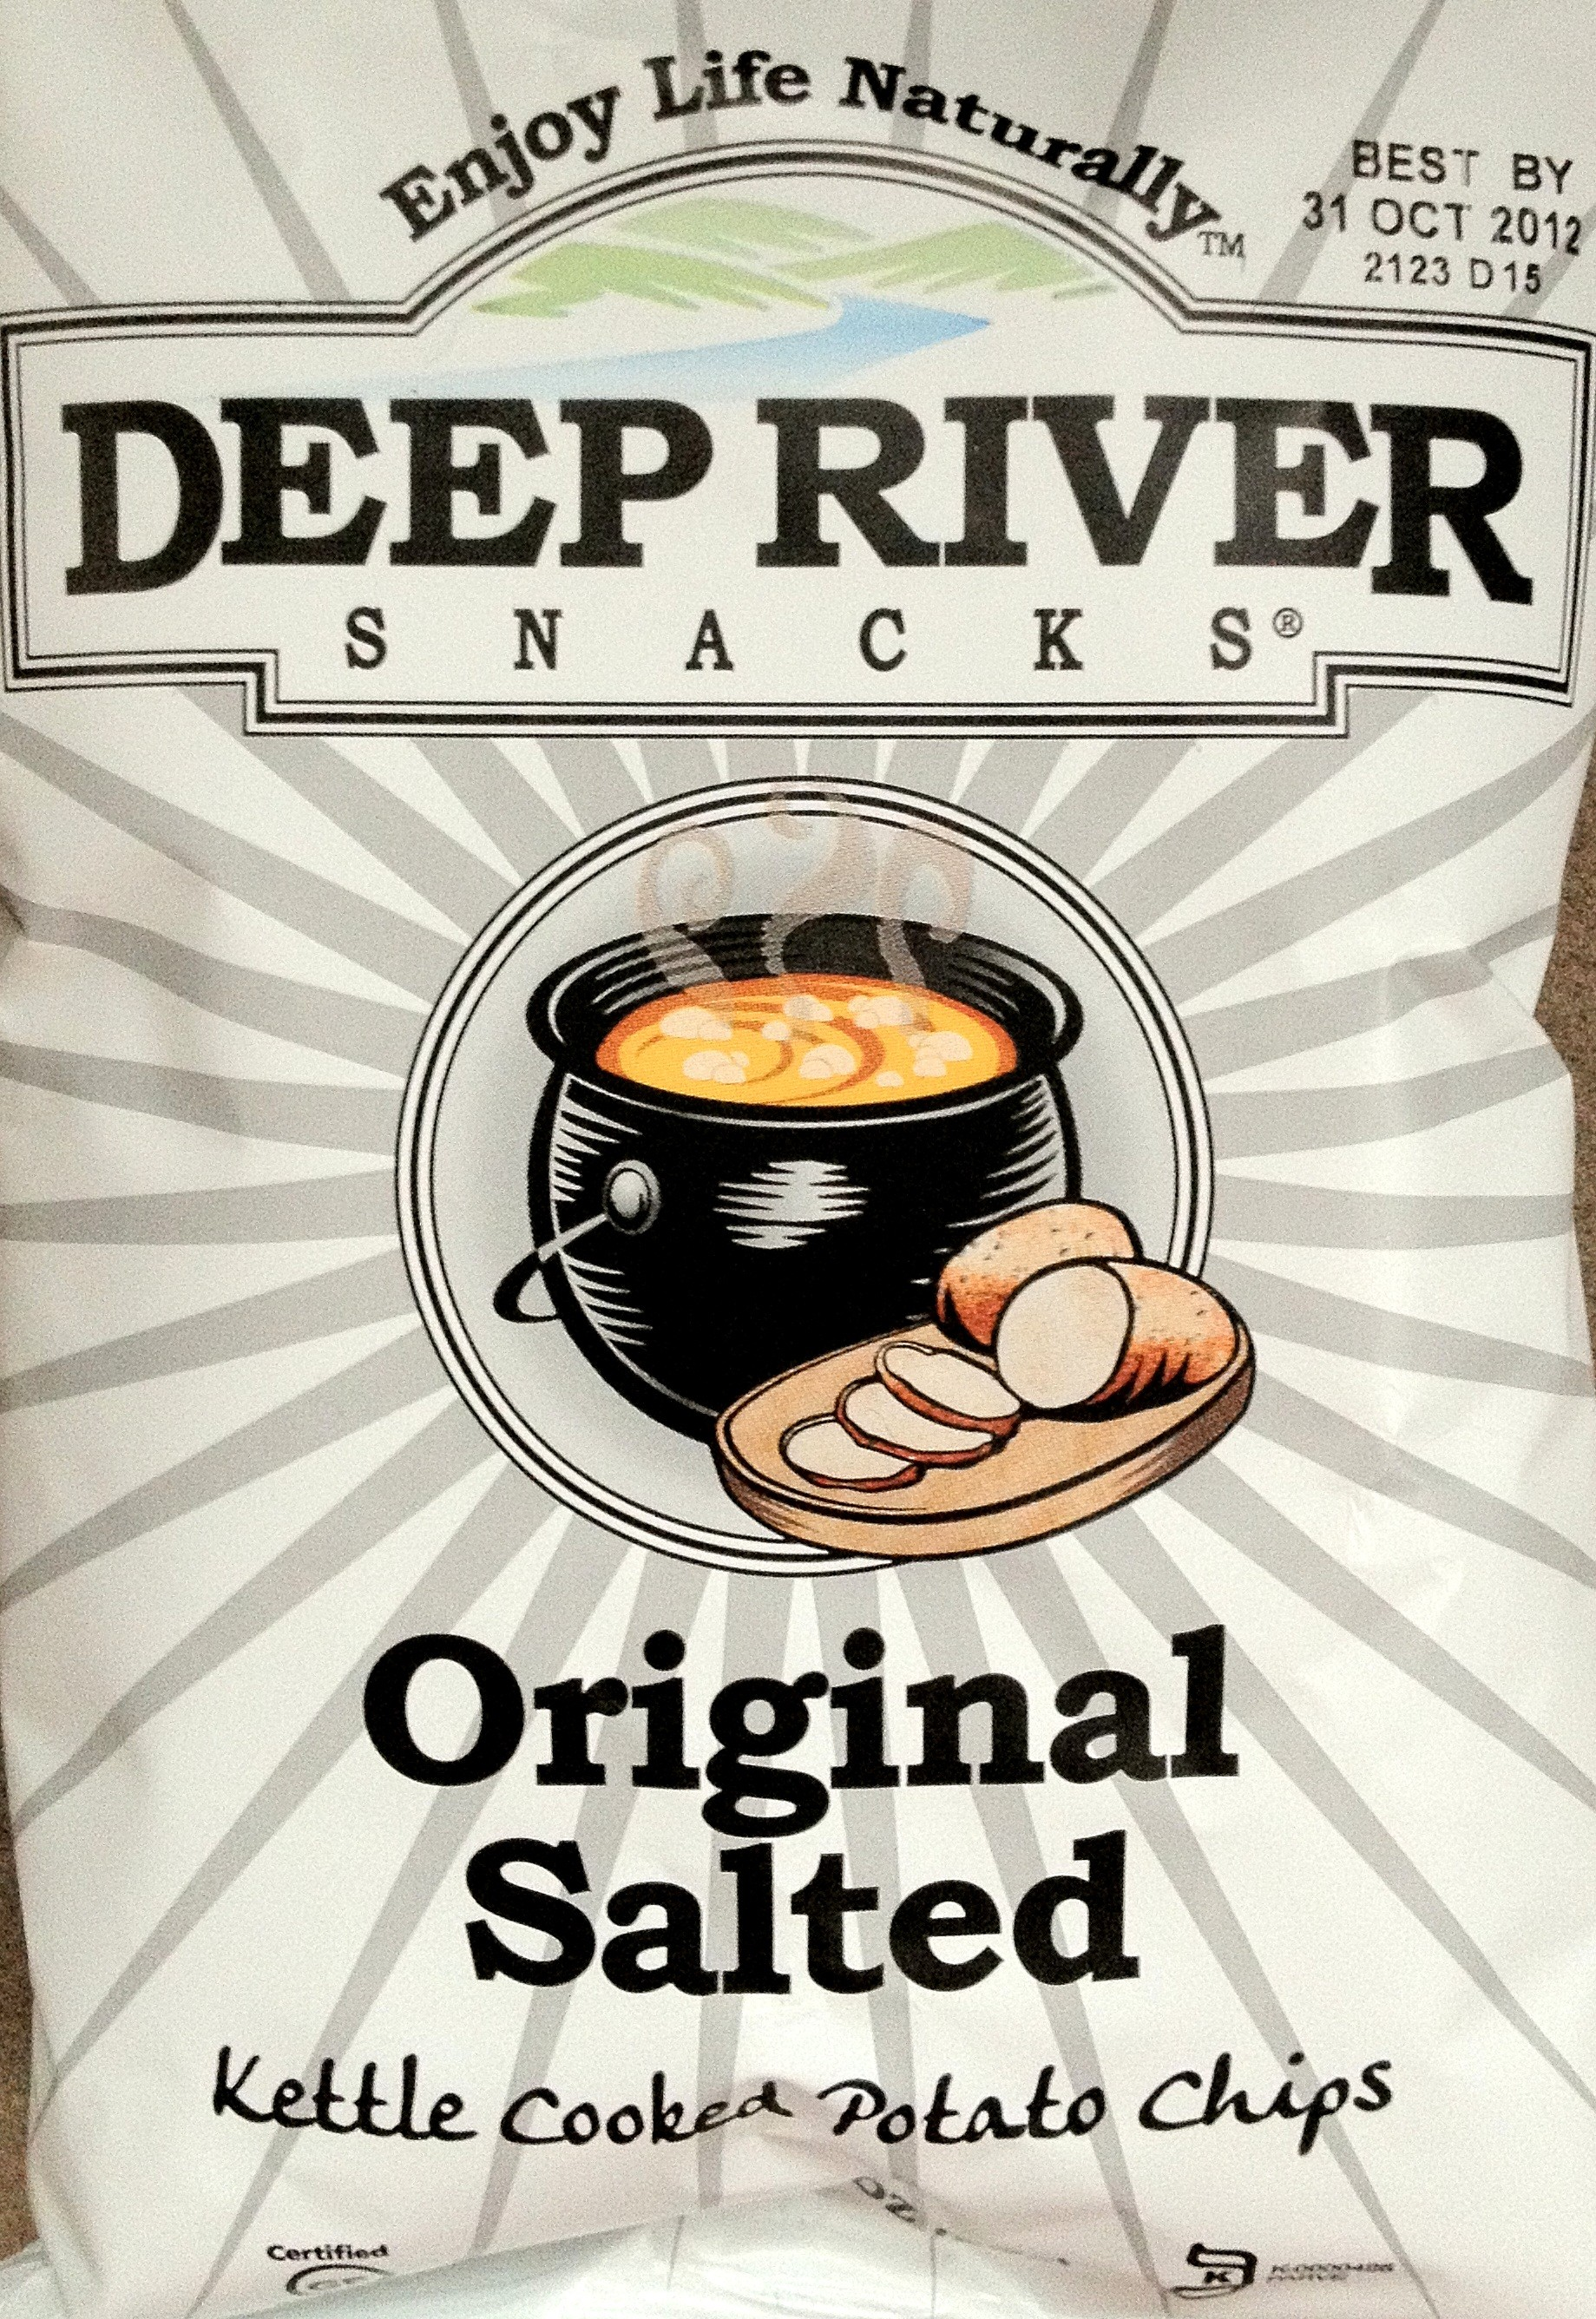 Deep River Snacks Original Salted